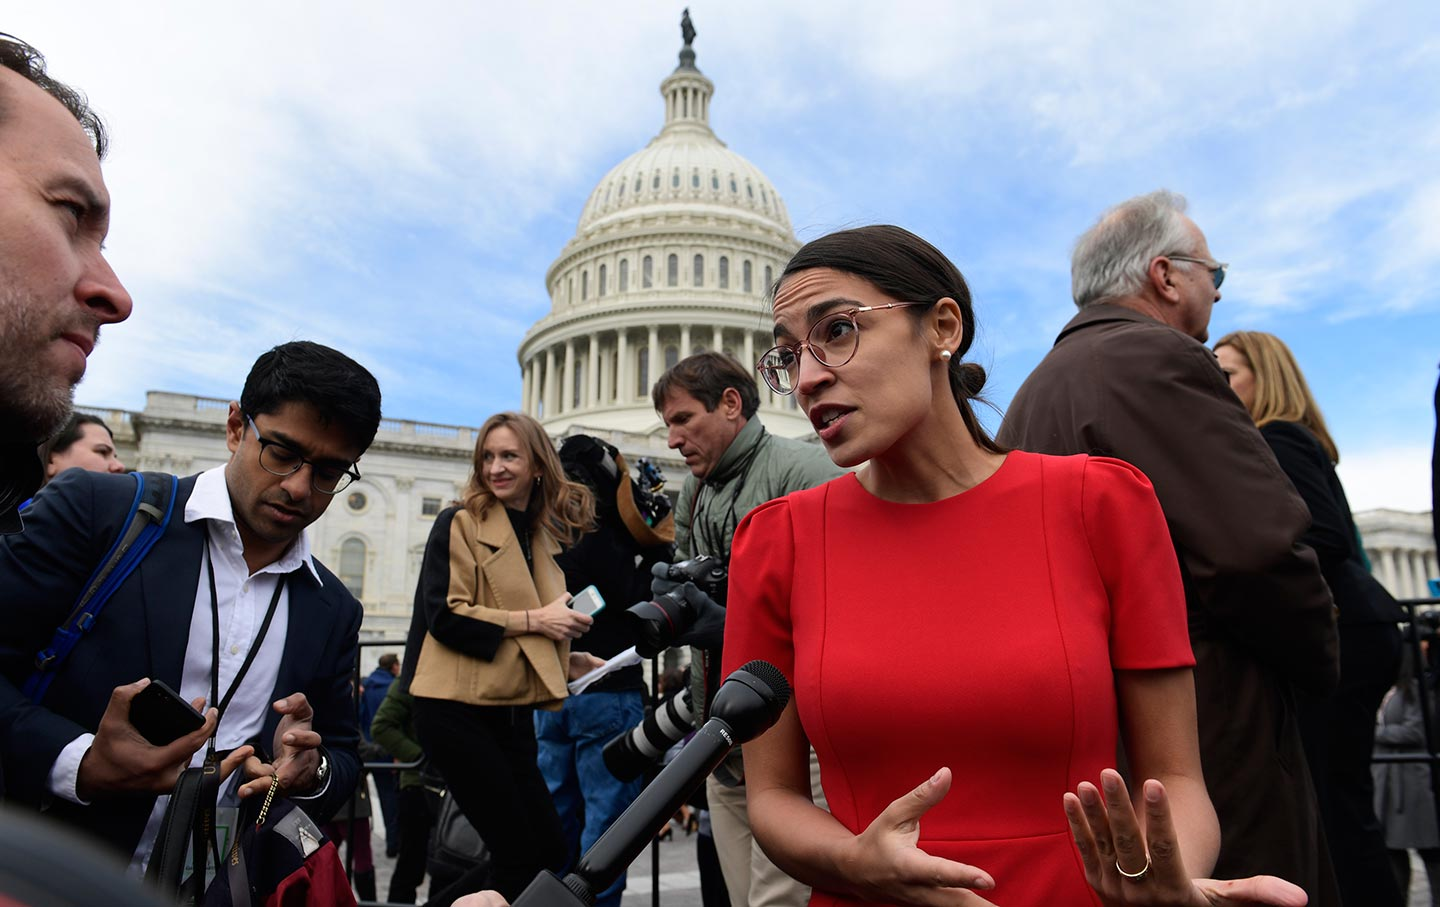 Alexandria Ocasio-Cortez outside the Capitol Building.